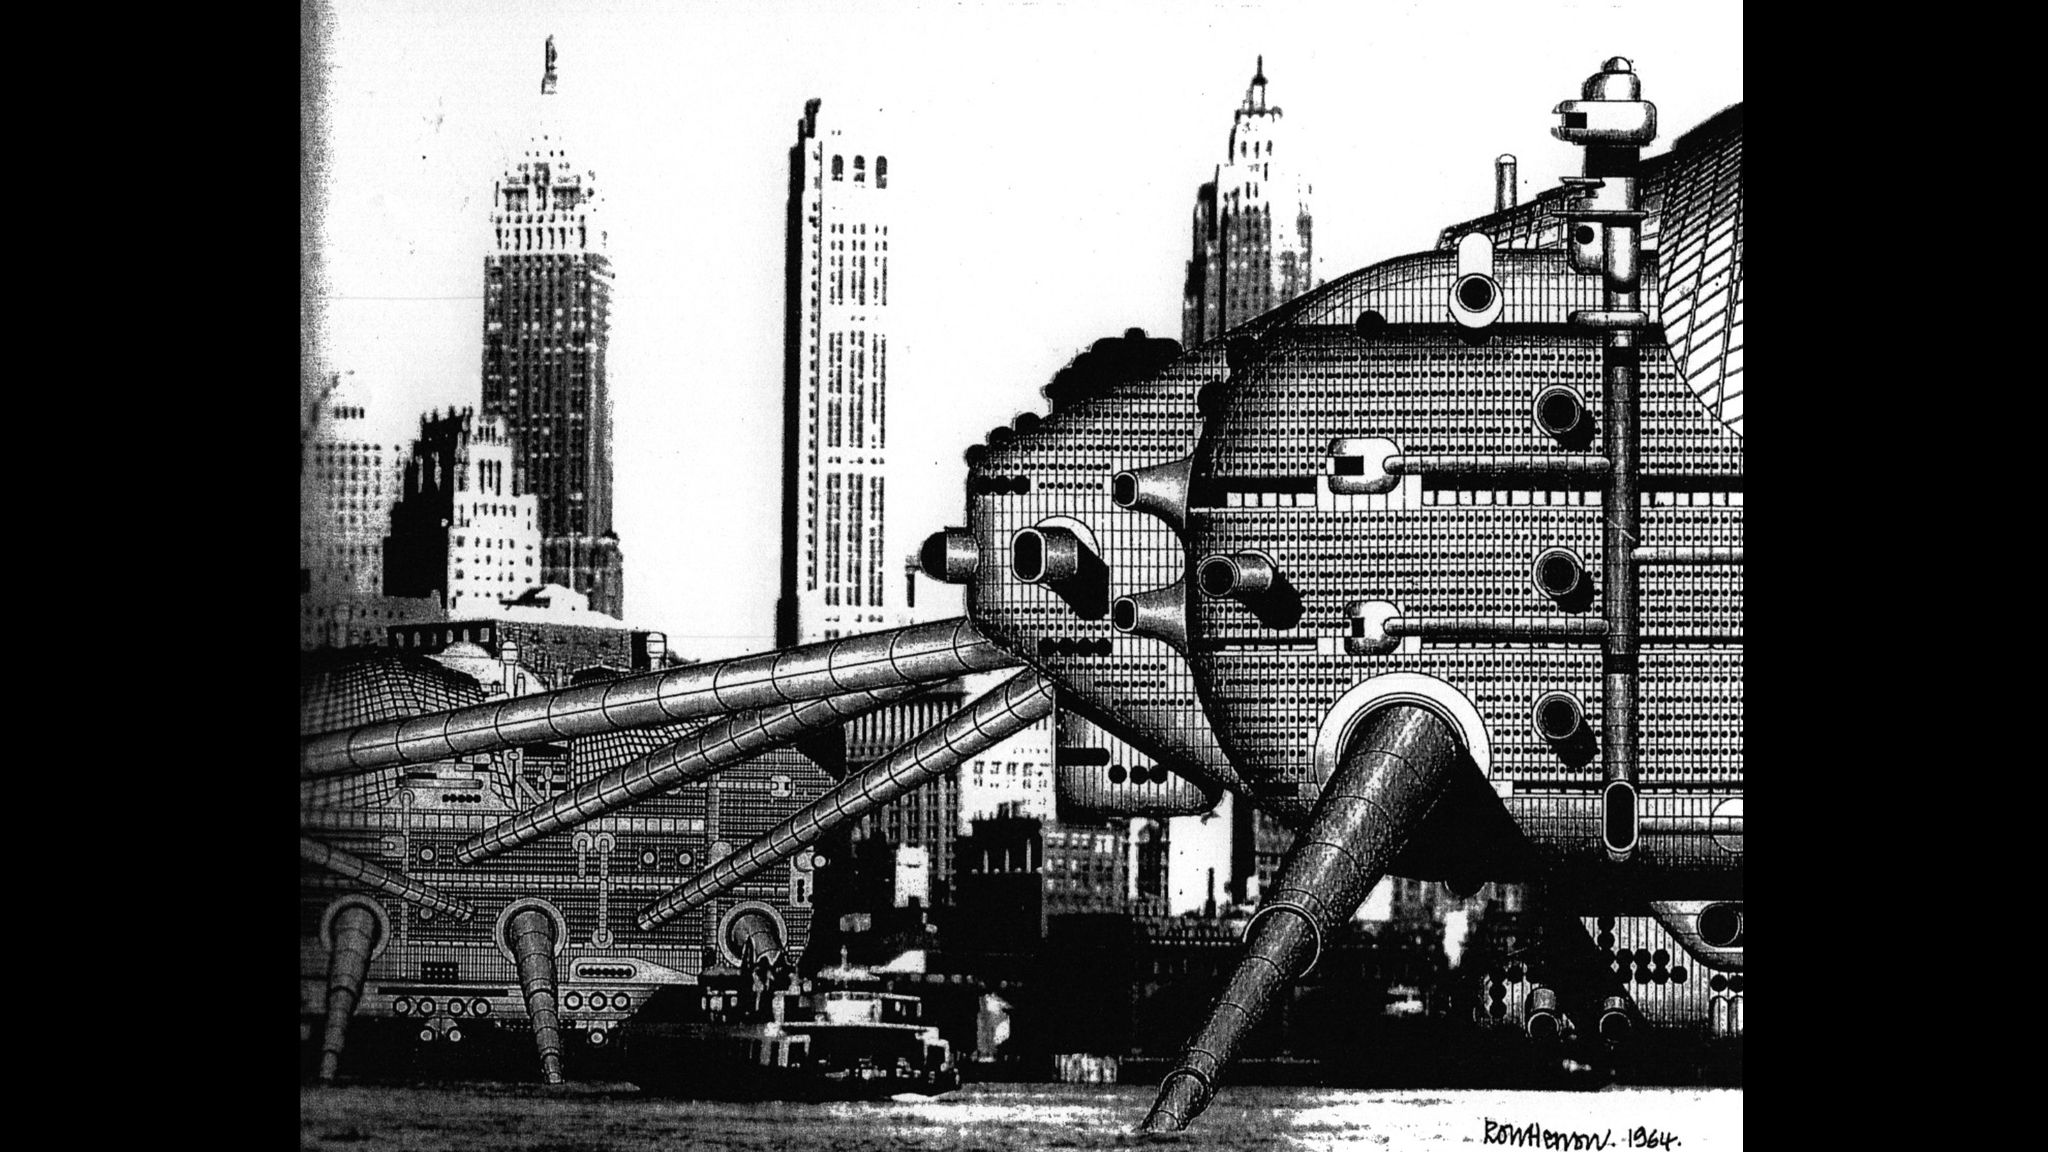 Walking City Archigram Frank Duffy Stream 02 PCA-STREAM